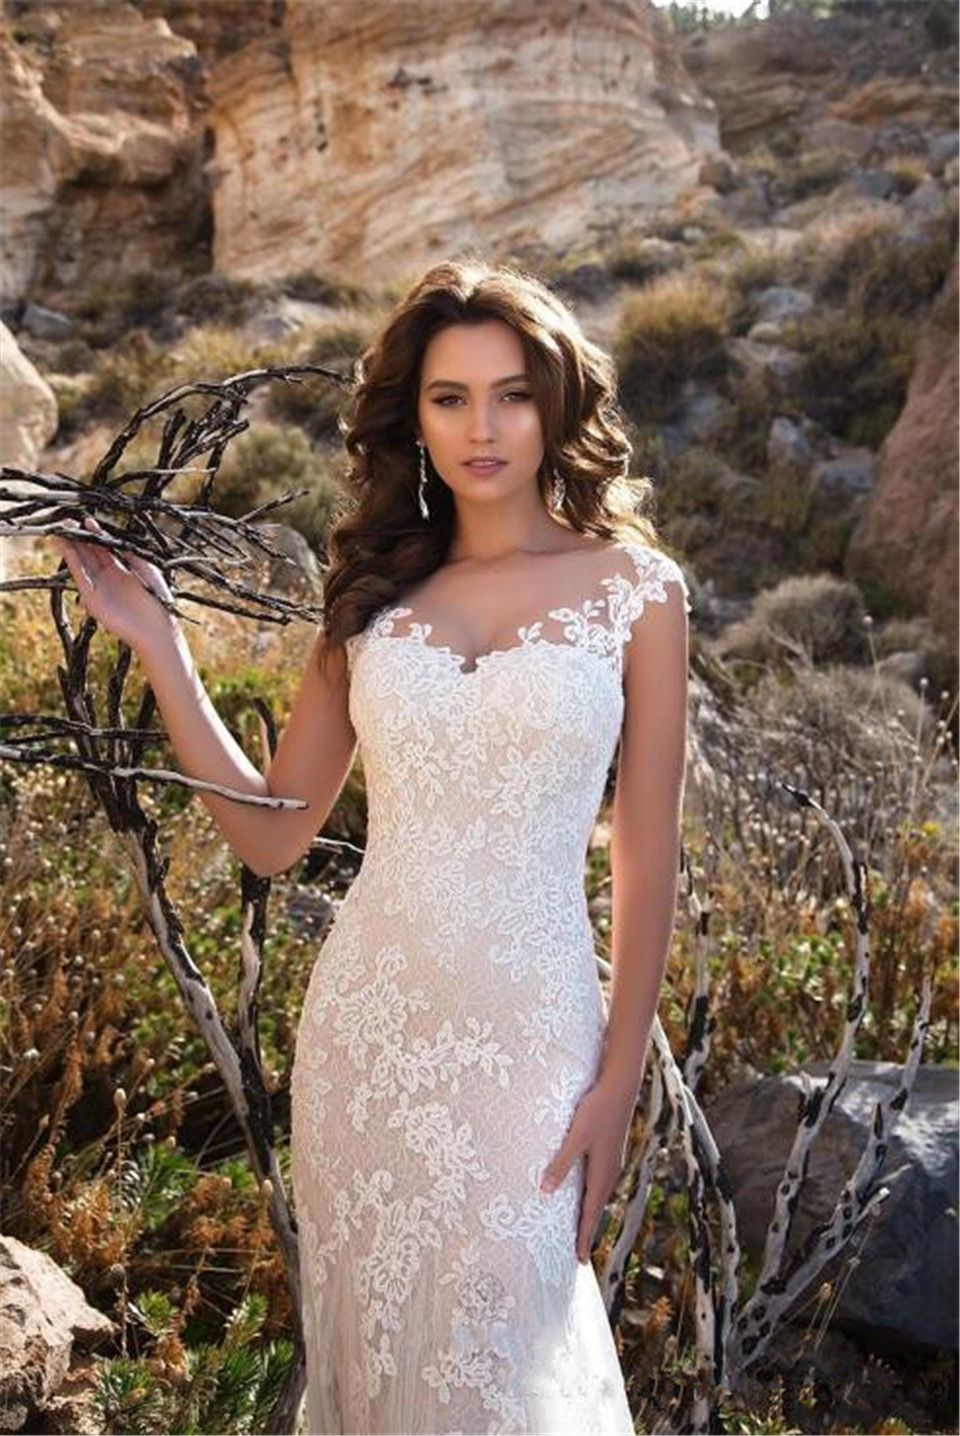 sheer-neck-appliqued-lace-wedding-dresses-2018-mermaid-court-train-boho-bridal-gowns-vestidos-de-noiva-ba8413 (3)_